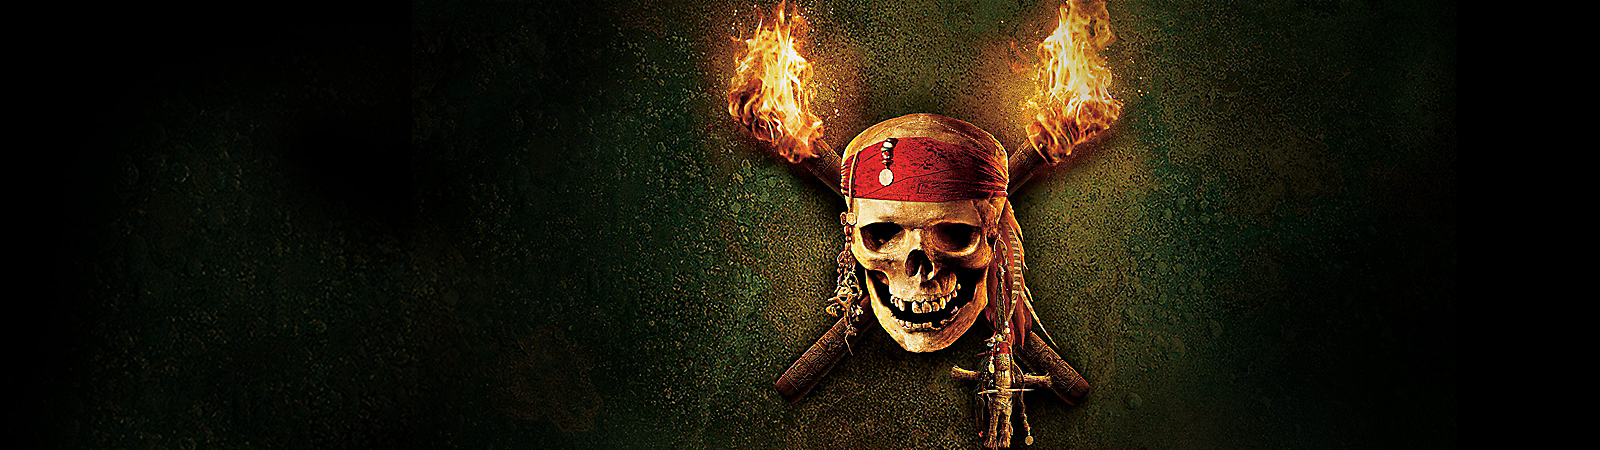 Background image of Pirates of the Caribbean